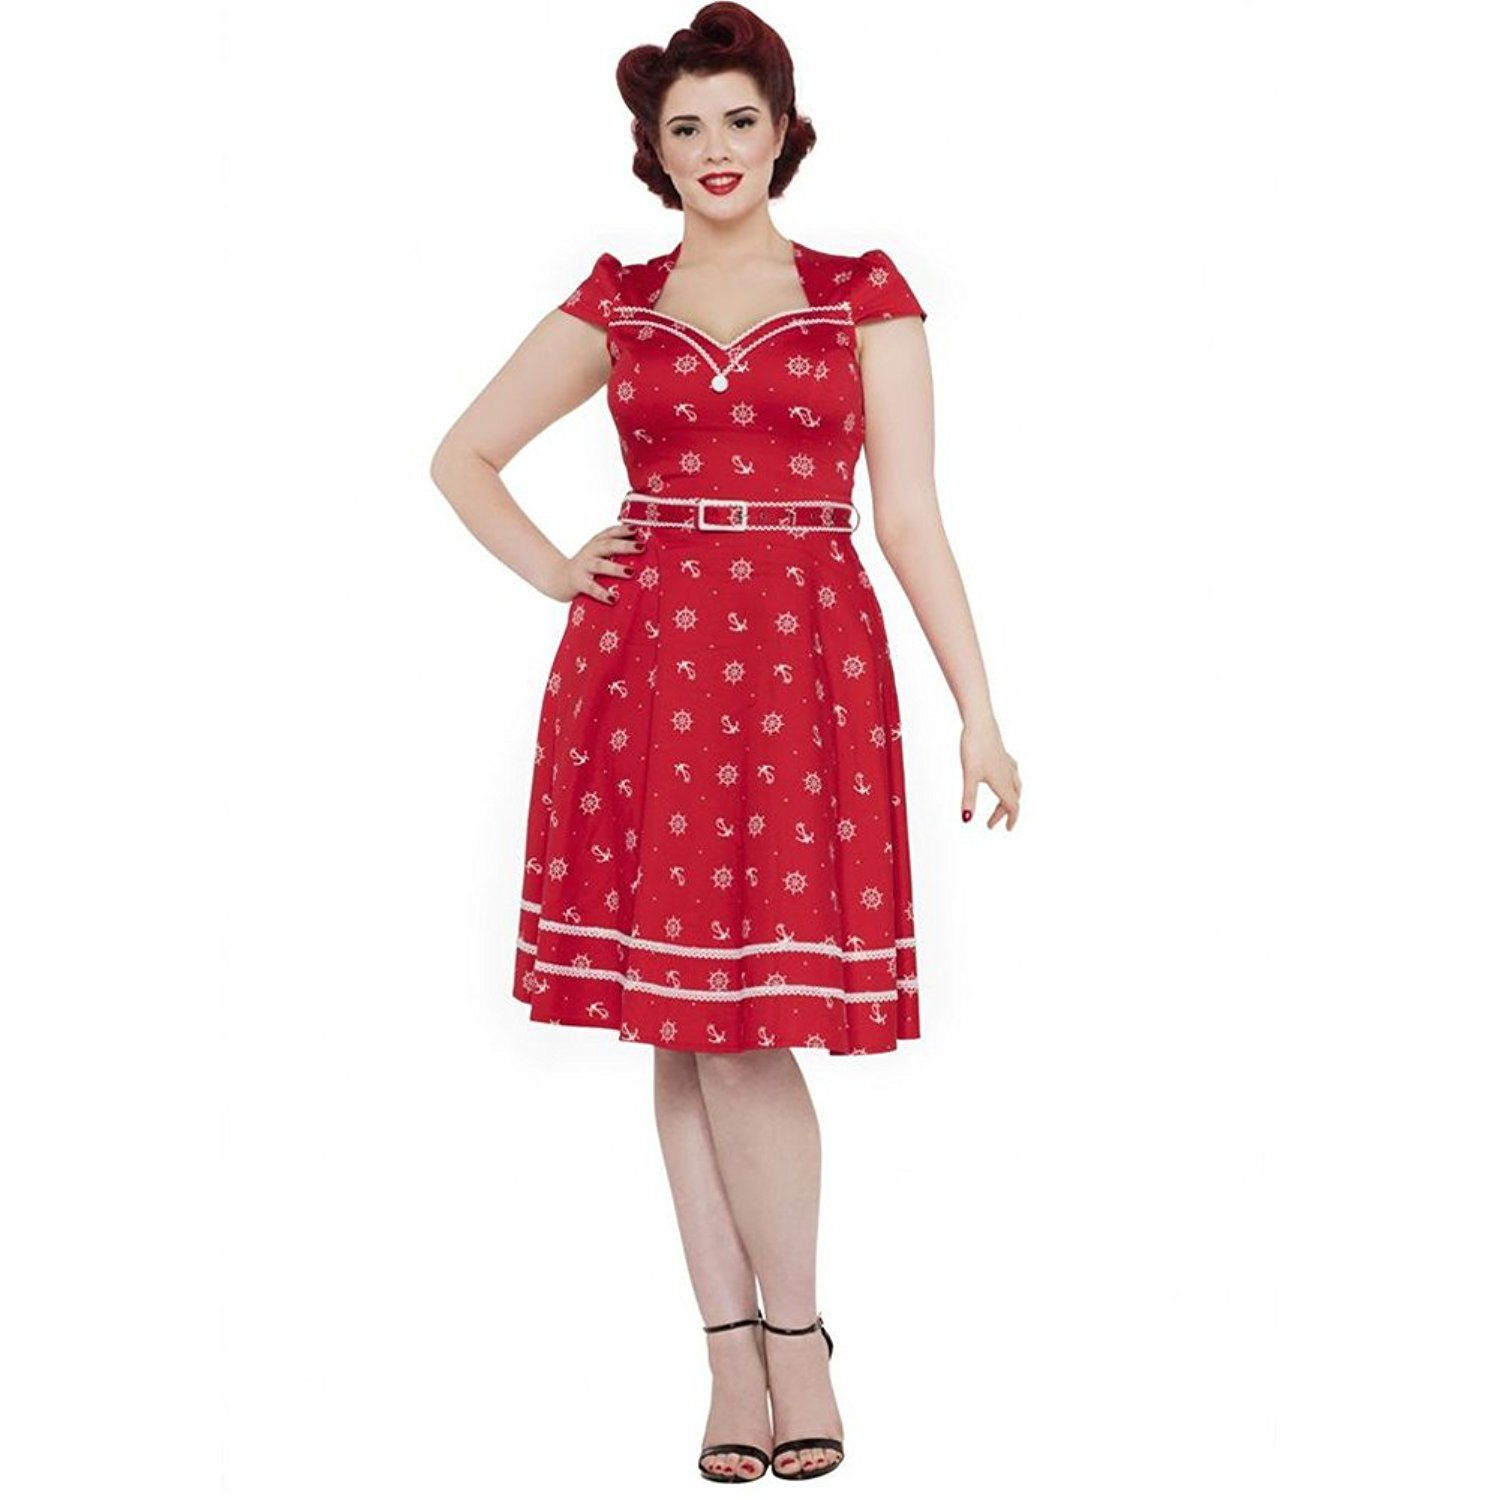 1950s Dresses, 50s Dresses | 1950s Style Dresses Voodoo Vixen Womens Leslie Wheel and Anchor Flare Dress Red $89.95 AT vintagedancer.com